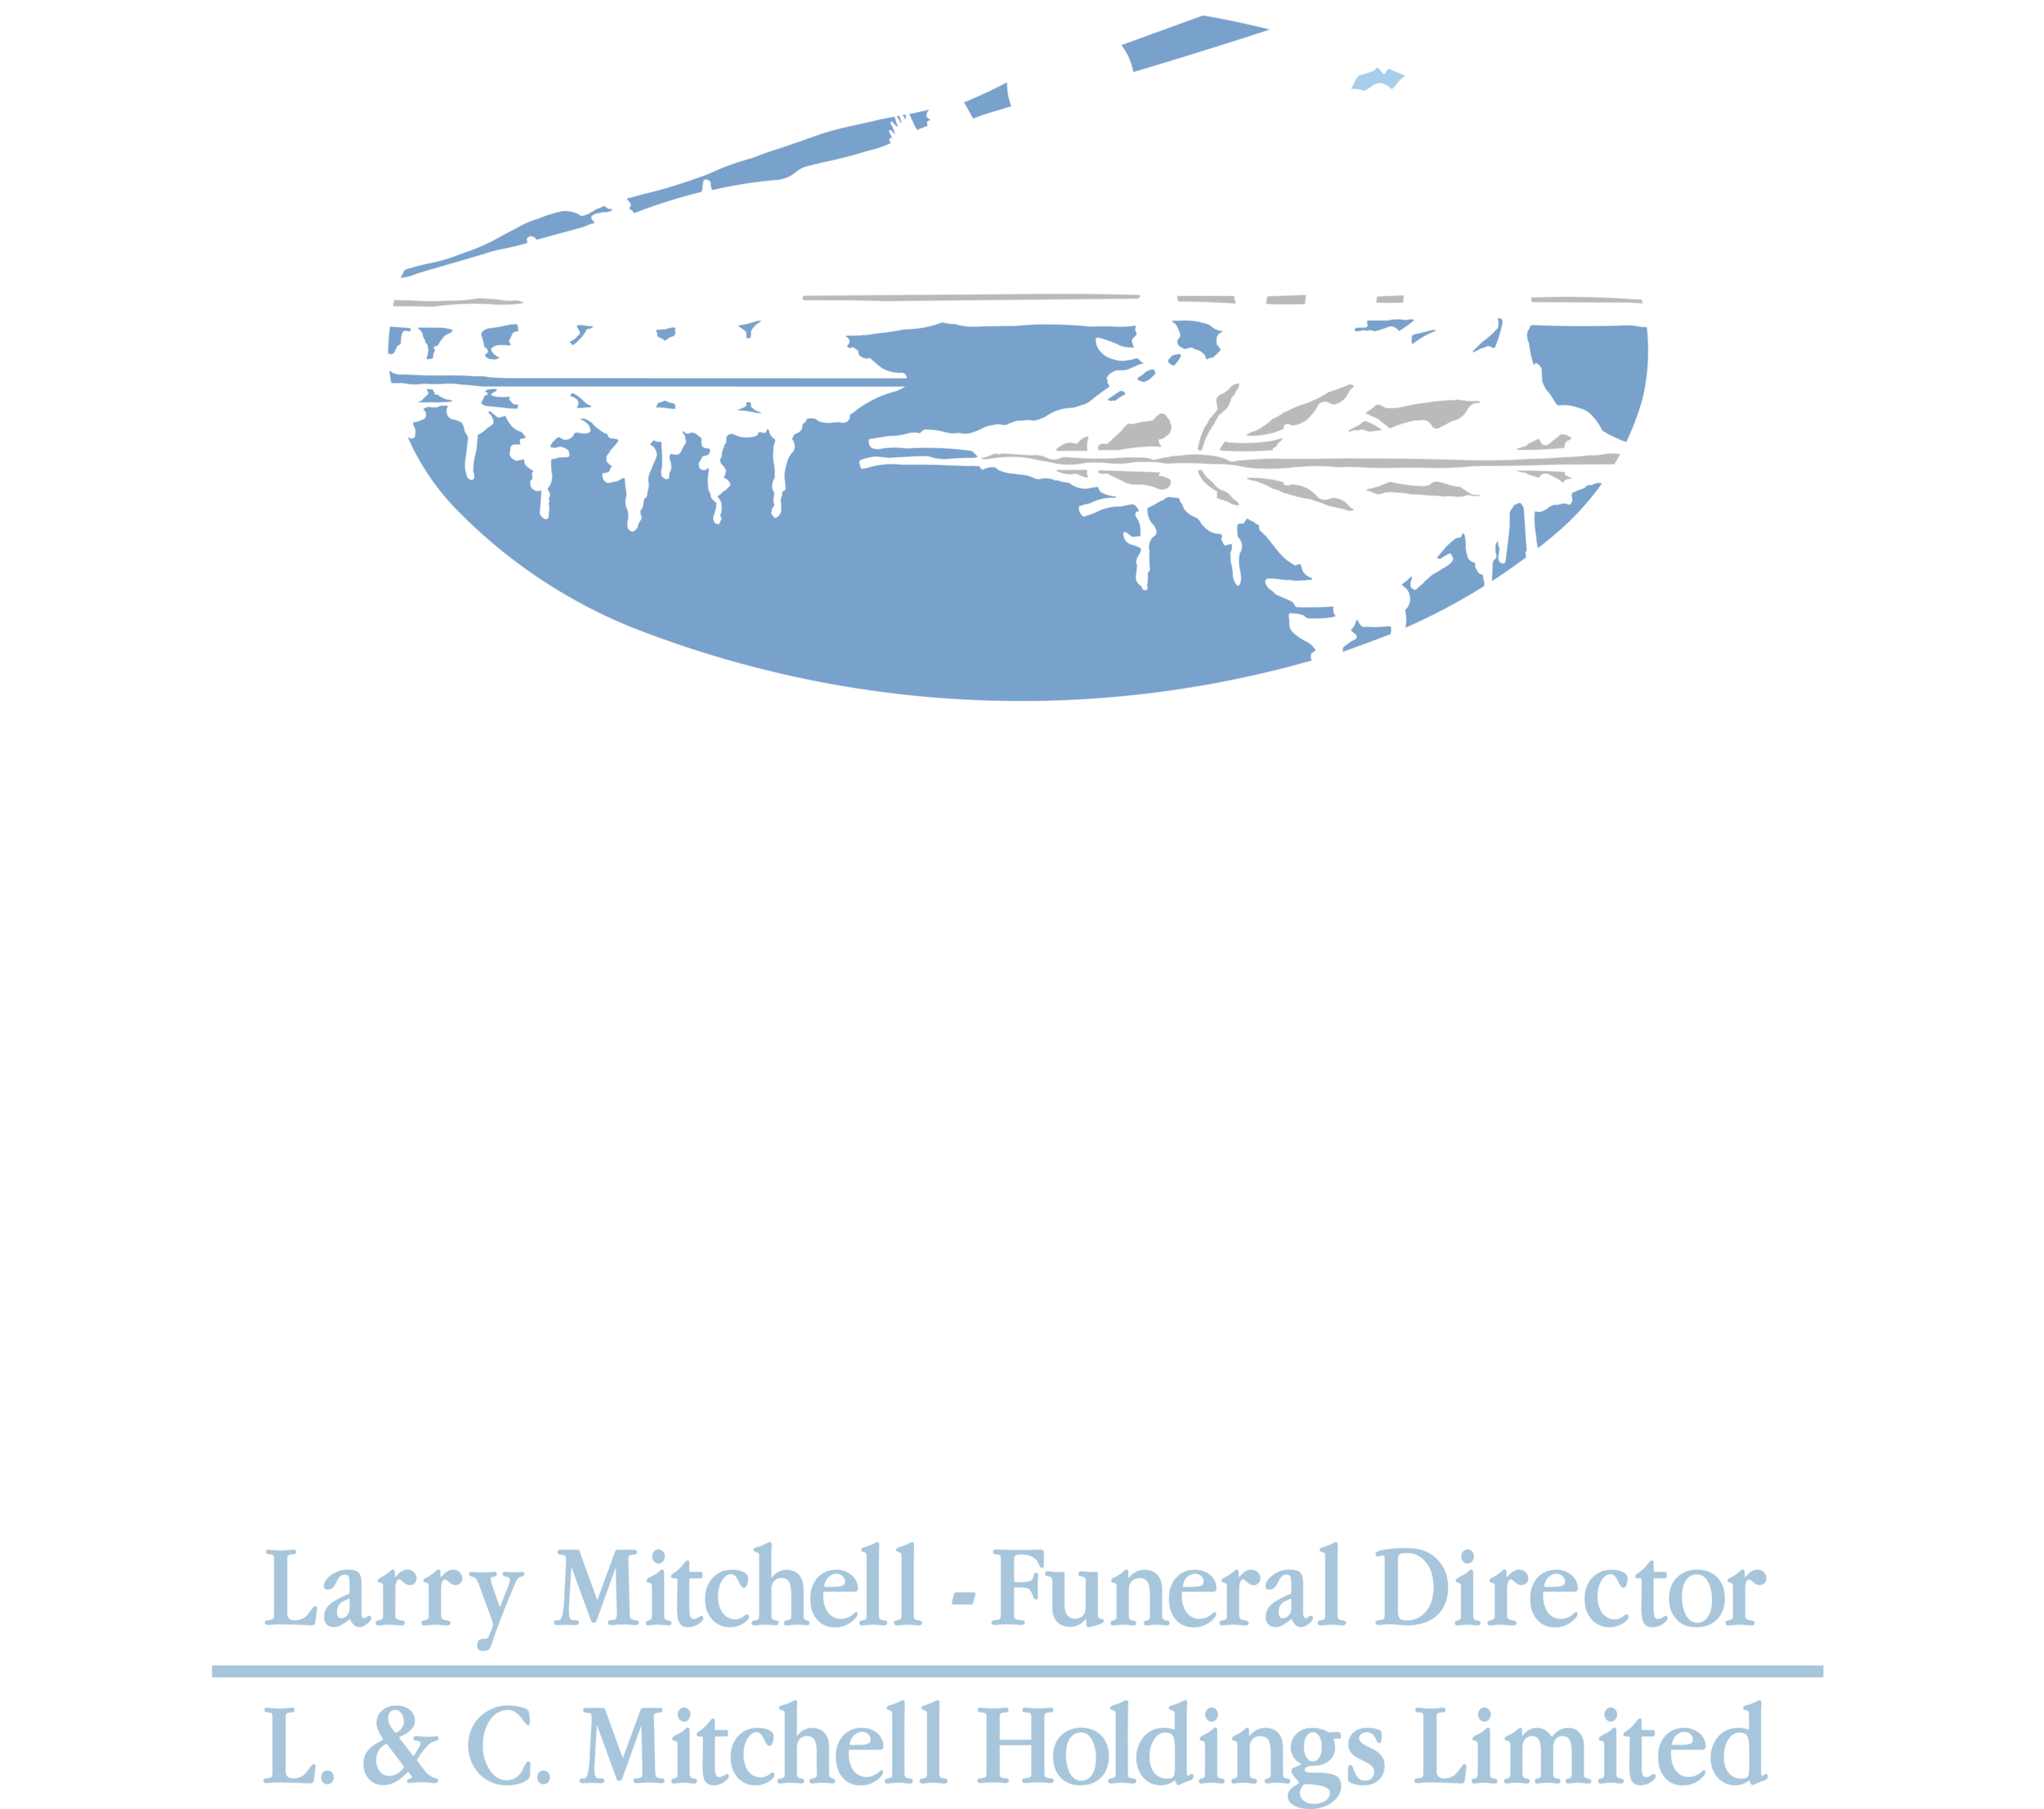 mitchell_social icon.png